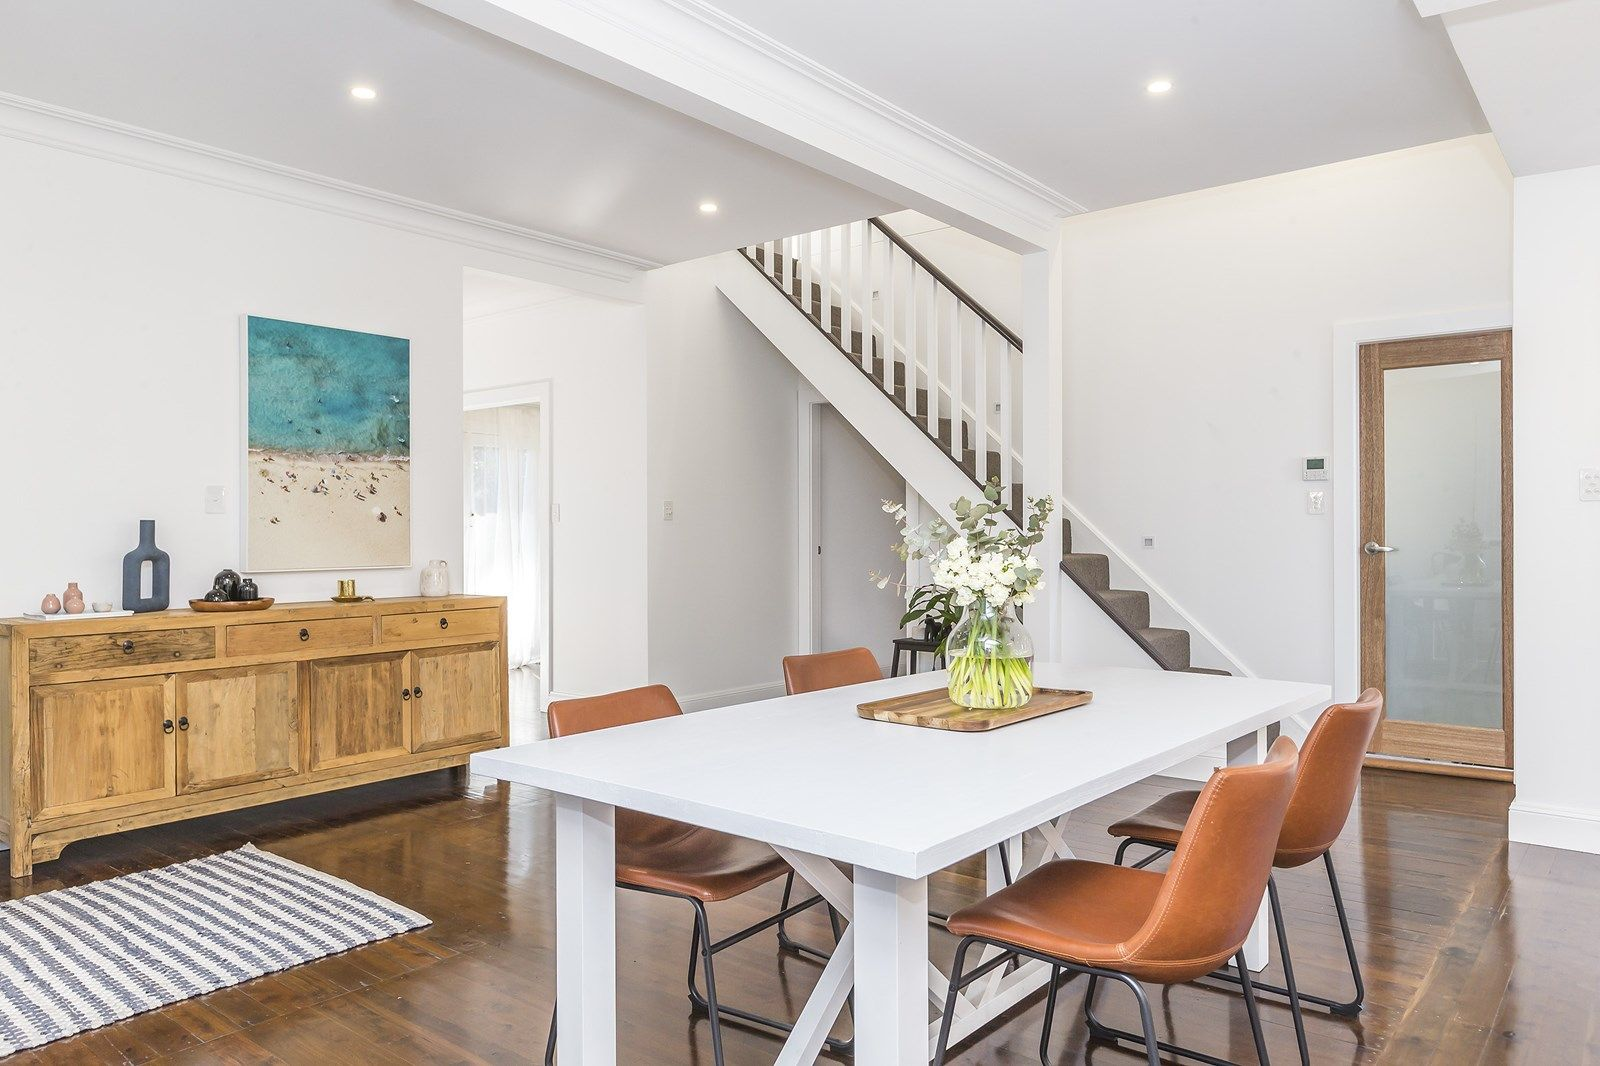 Expected price: $875,000Staging cost: $4150SOLD: $950,000UPLIFT: $75,000 - September 2018